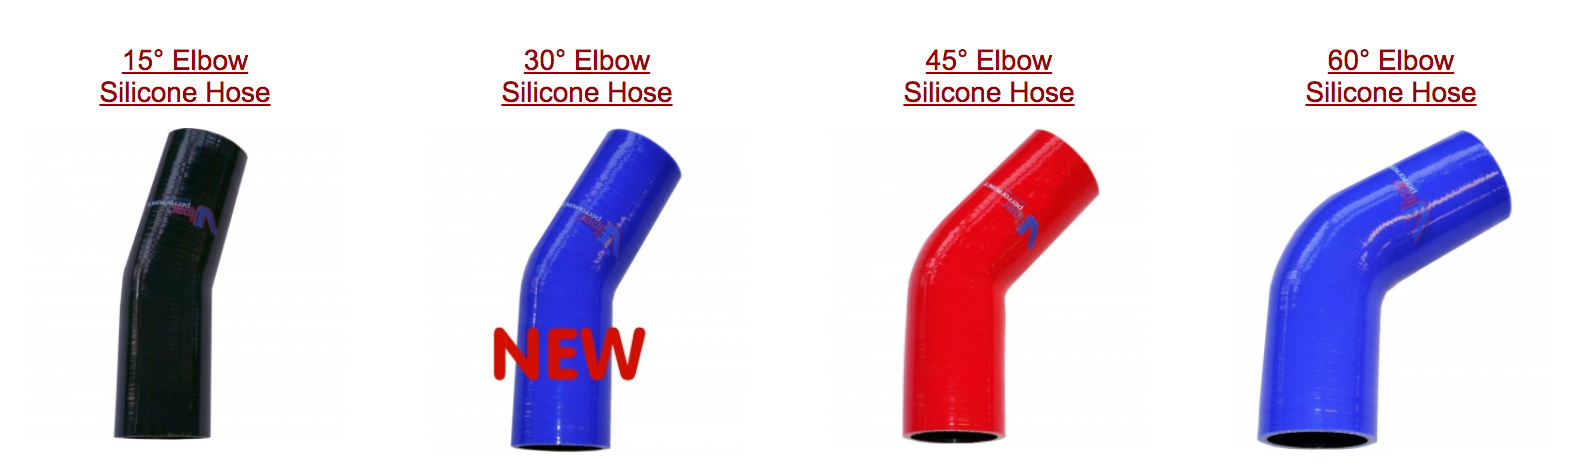 Silicone Hoses for sale